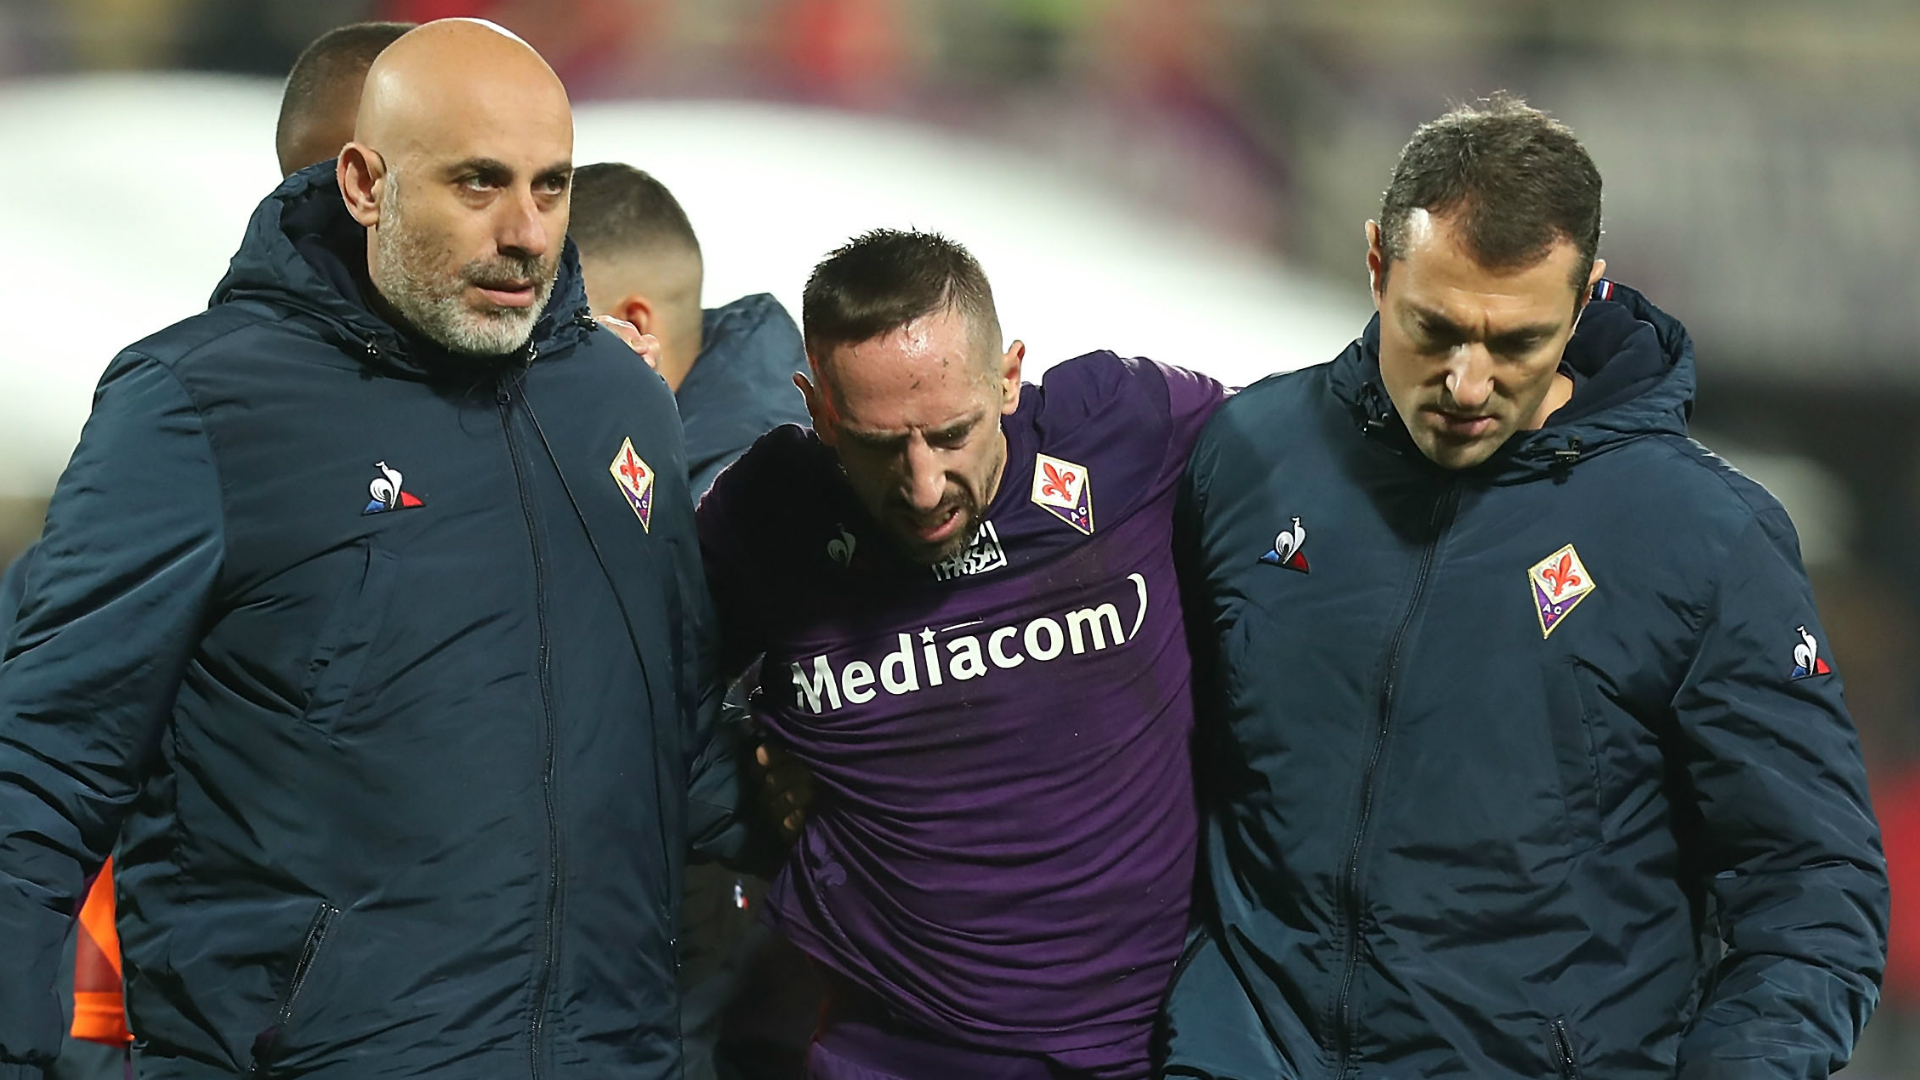 Fiorentina winger Ribery suffers ankle ligament injury